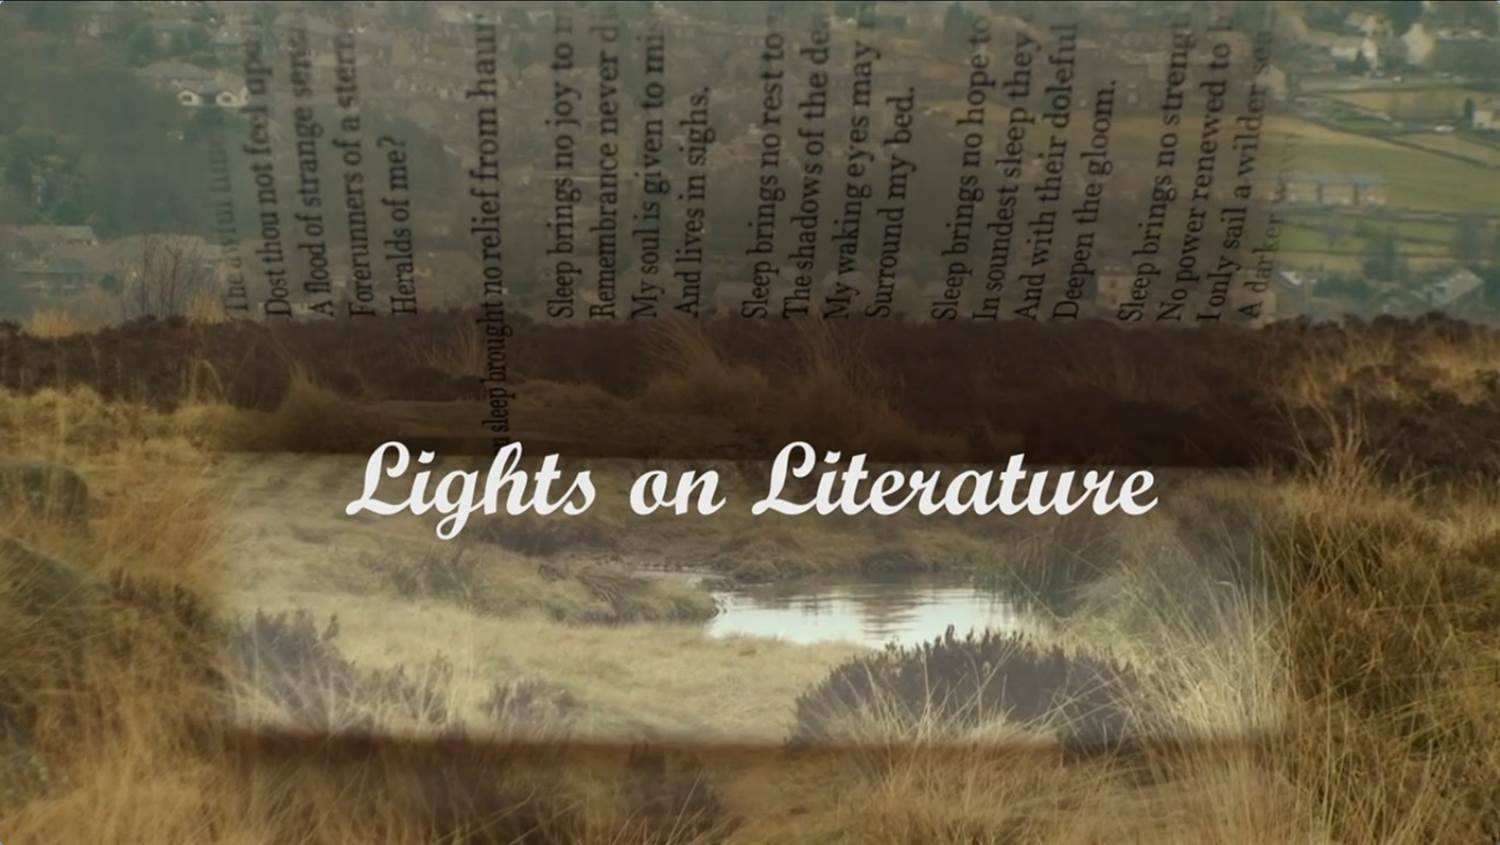 Lights on Literature